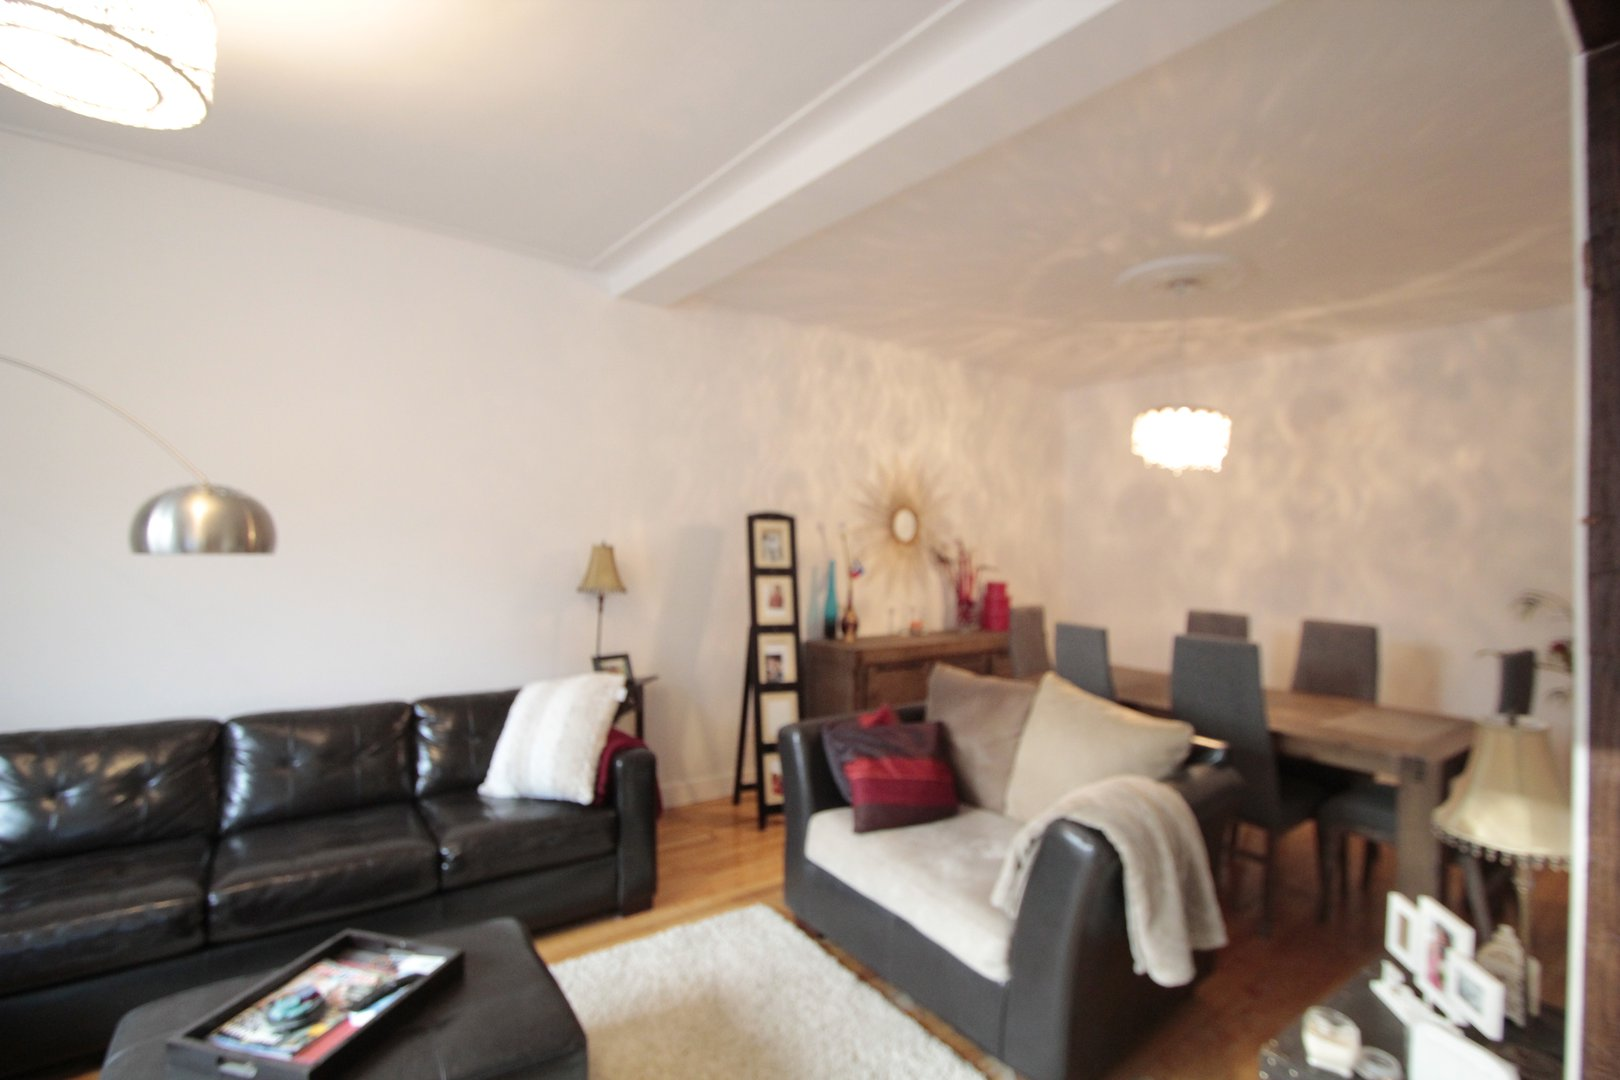 Apartment for rent at 4649 Avenue Clanranald, Montréal, QC. This is the living room with beamed ceiling and hardwood floor.